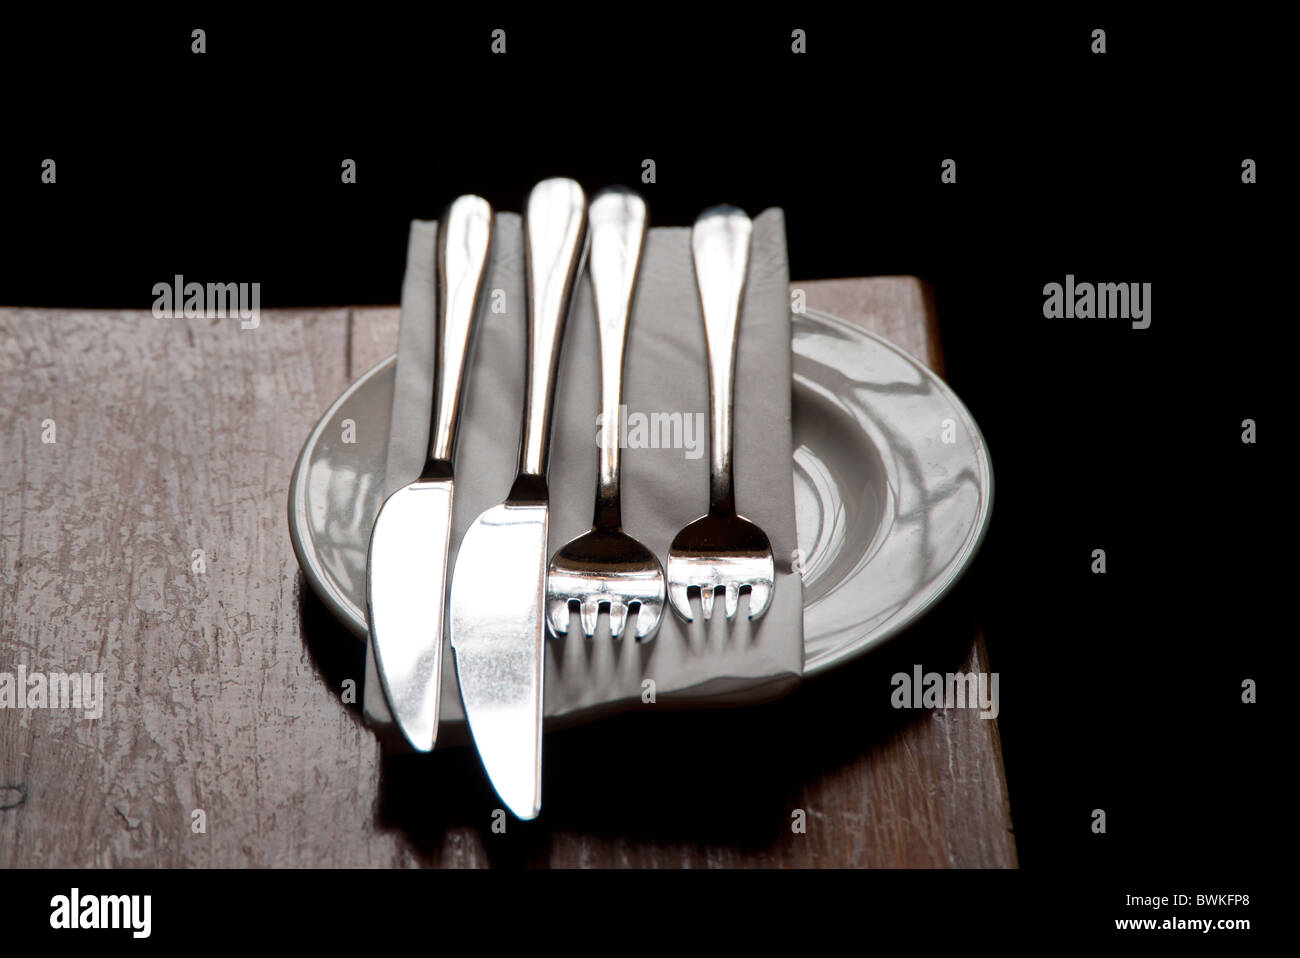 plate knifes and forks - Stock Image